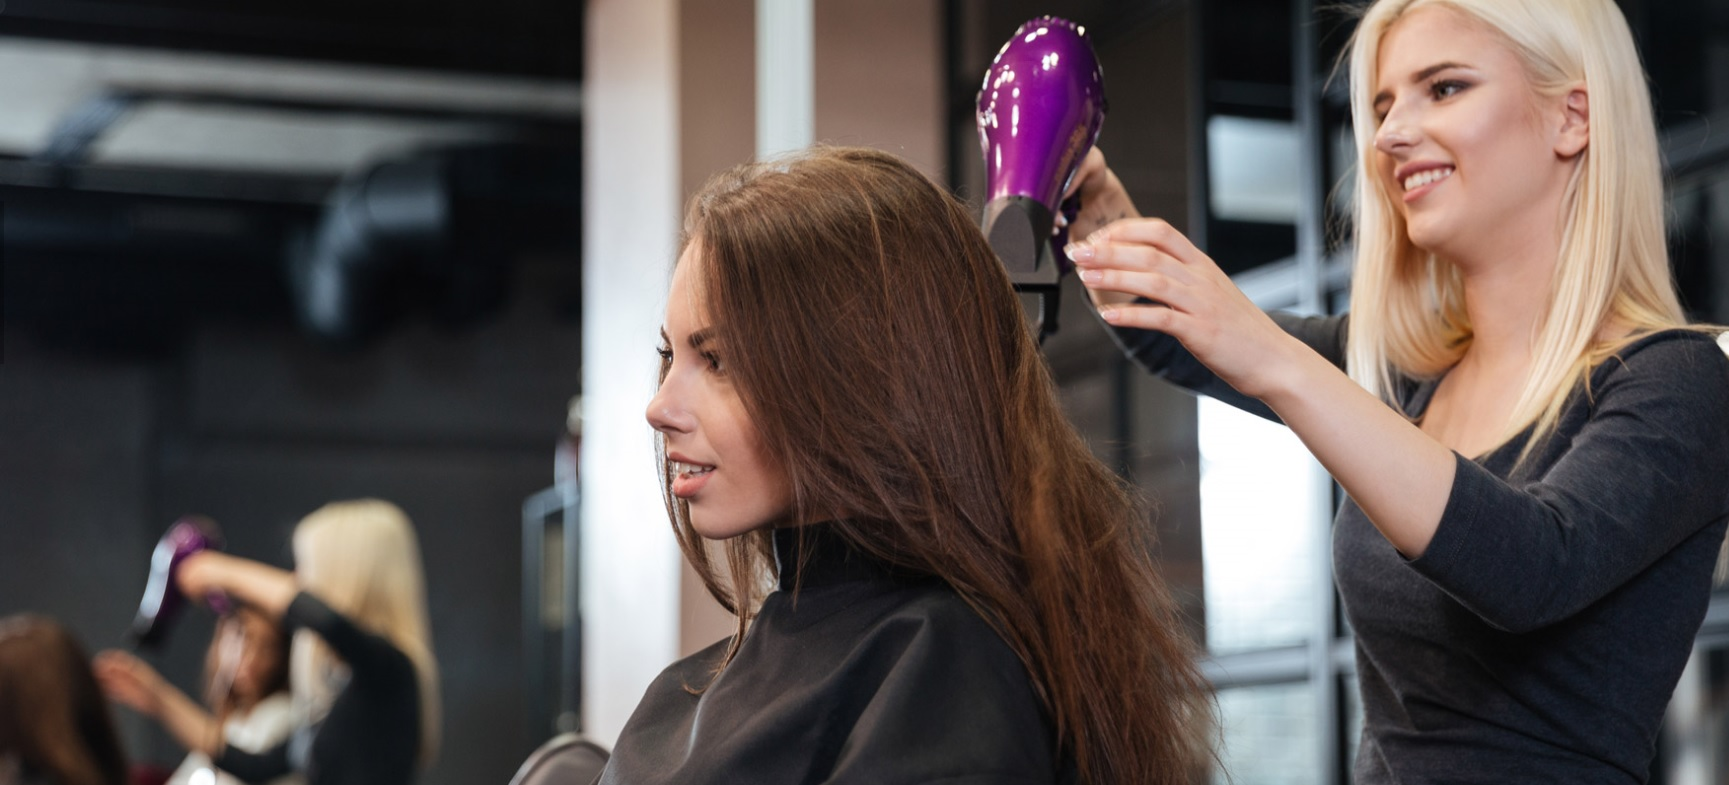 Partly Managed Adelaide Hills Hair Salon For Sale in South Australia,